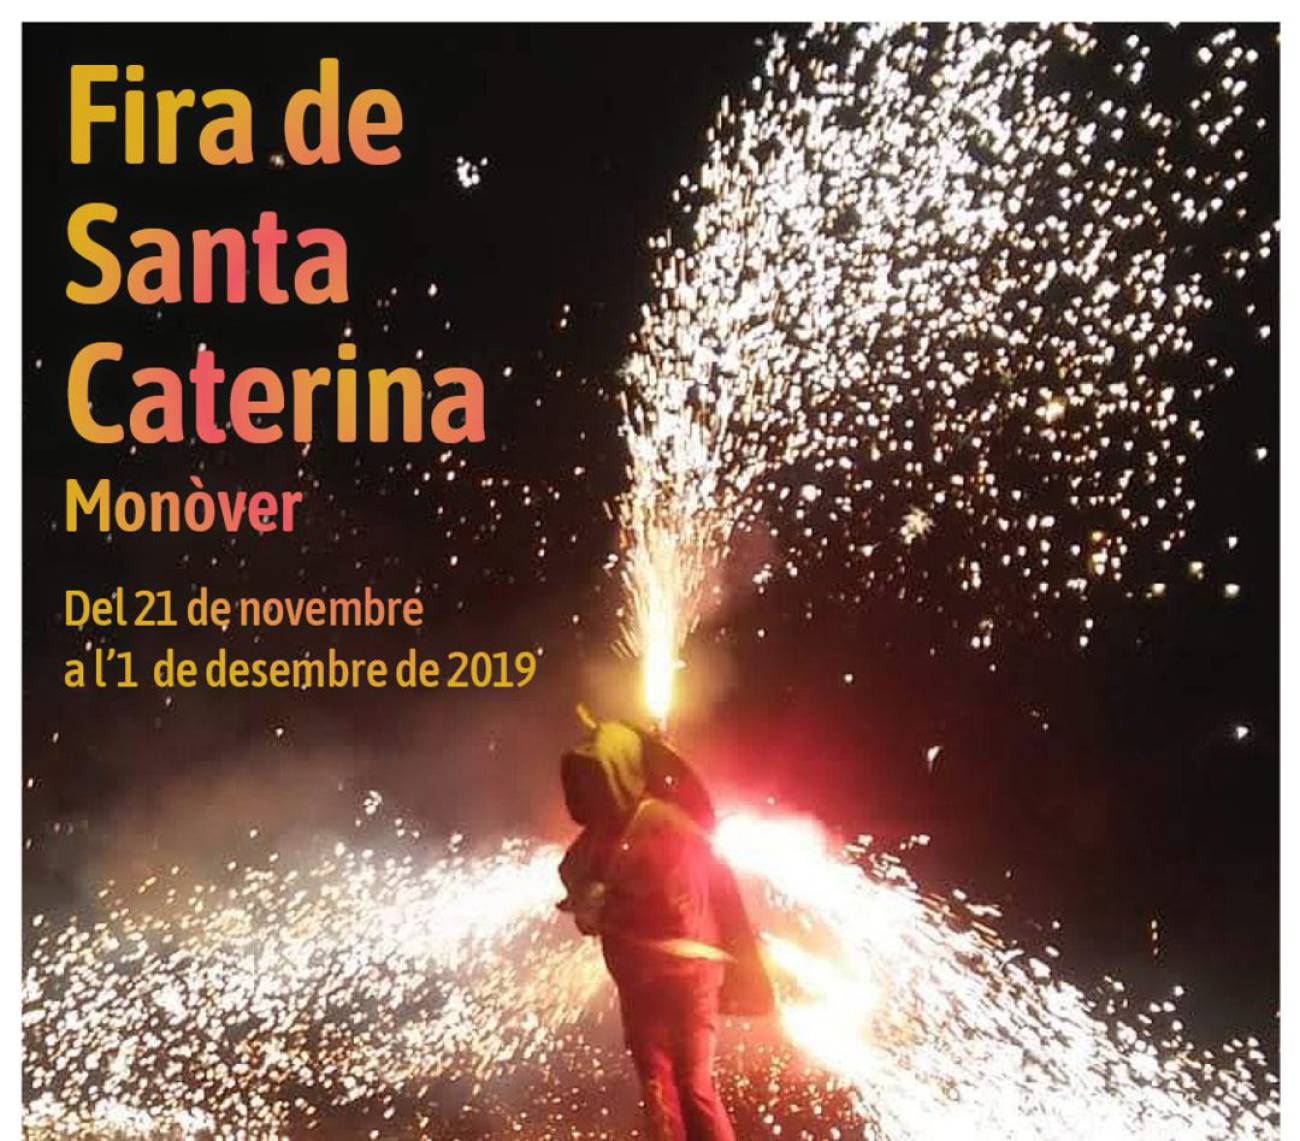 Fiestas en honor a Santa Catalina